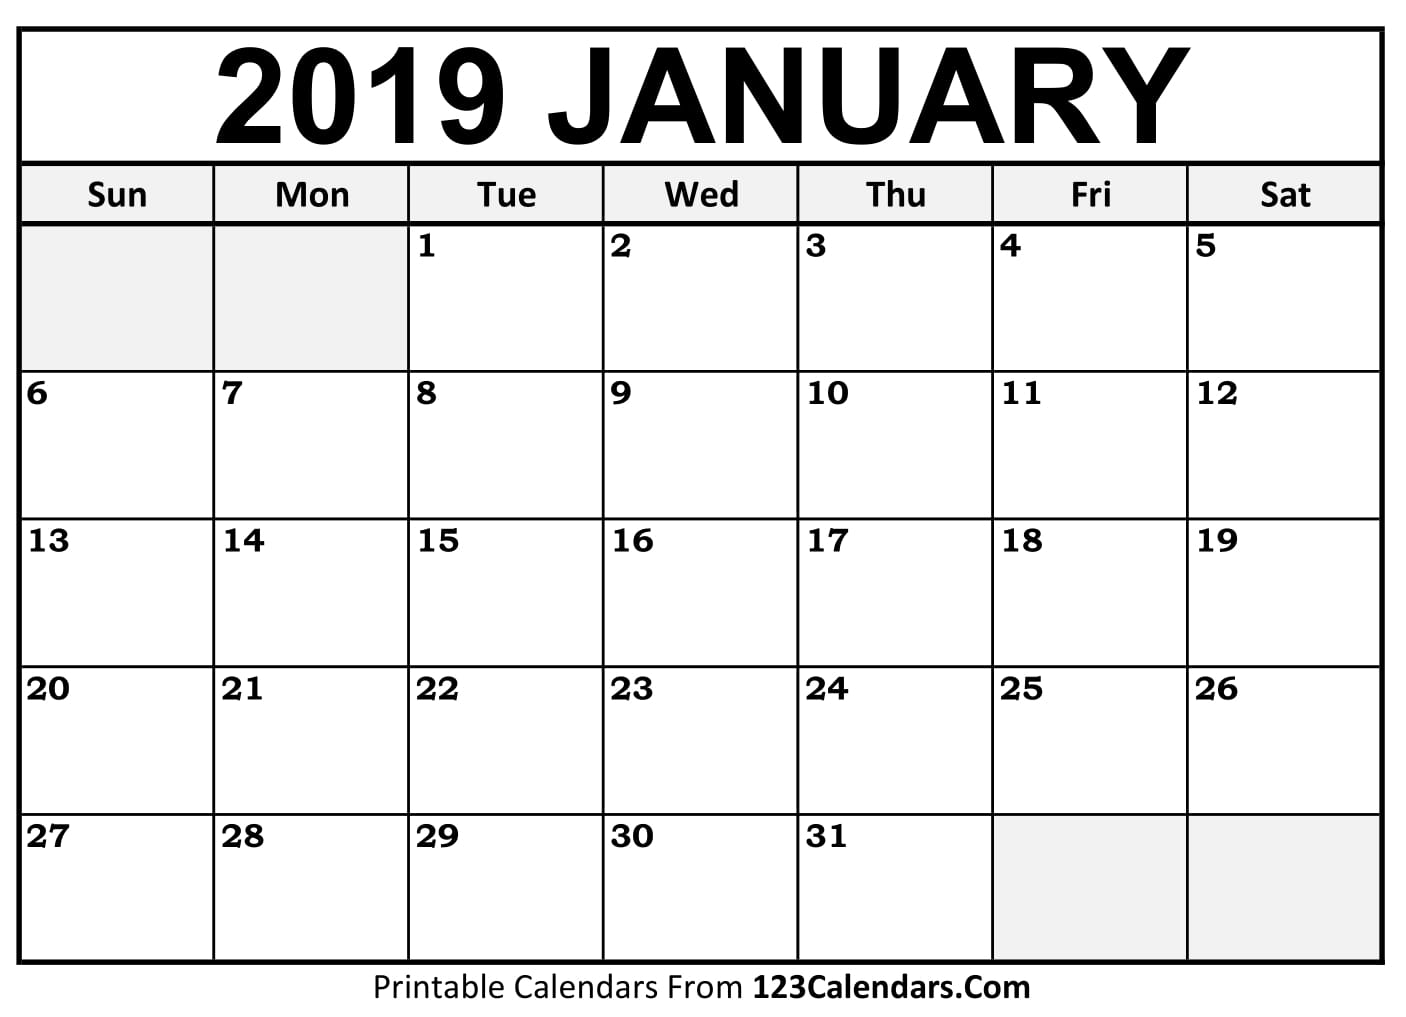 image regarding Calendars Printable known as Cost-free Printable Calendar